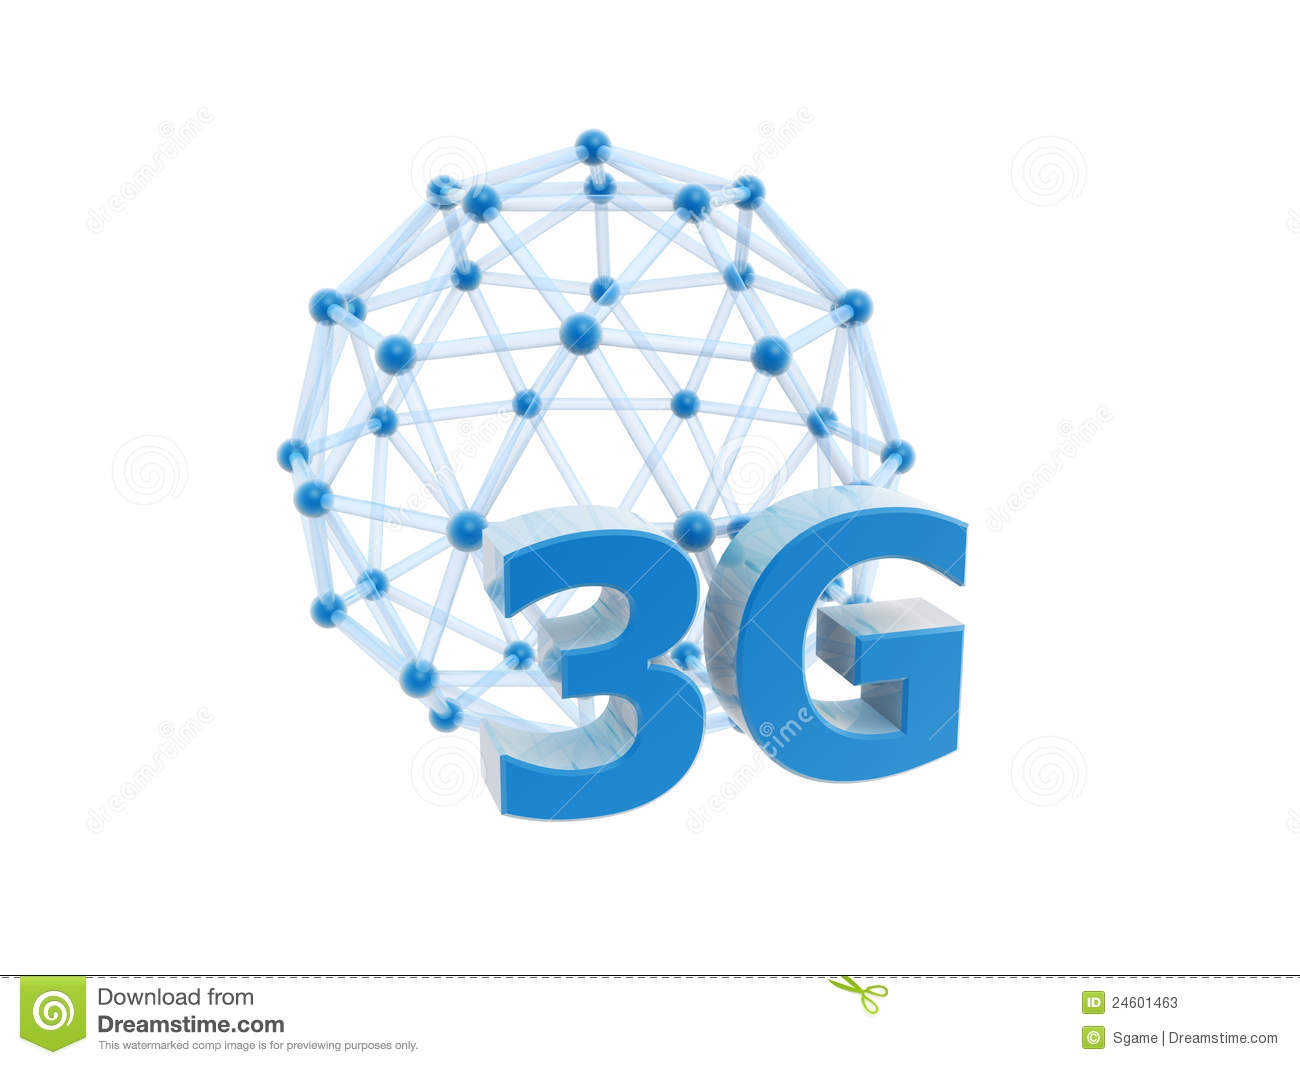 3g network cage ball stock photos   image 24601463